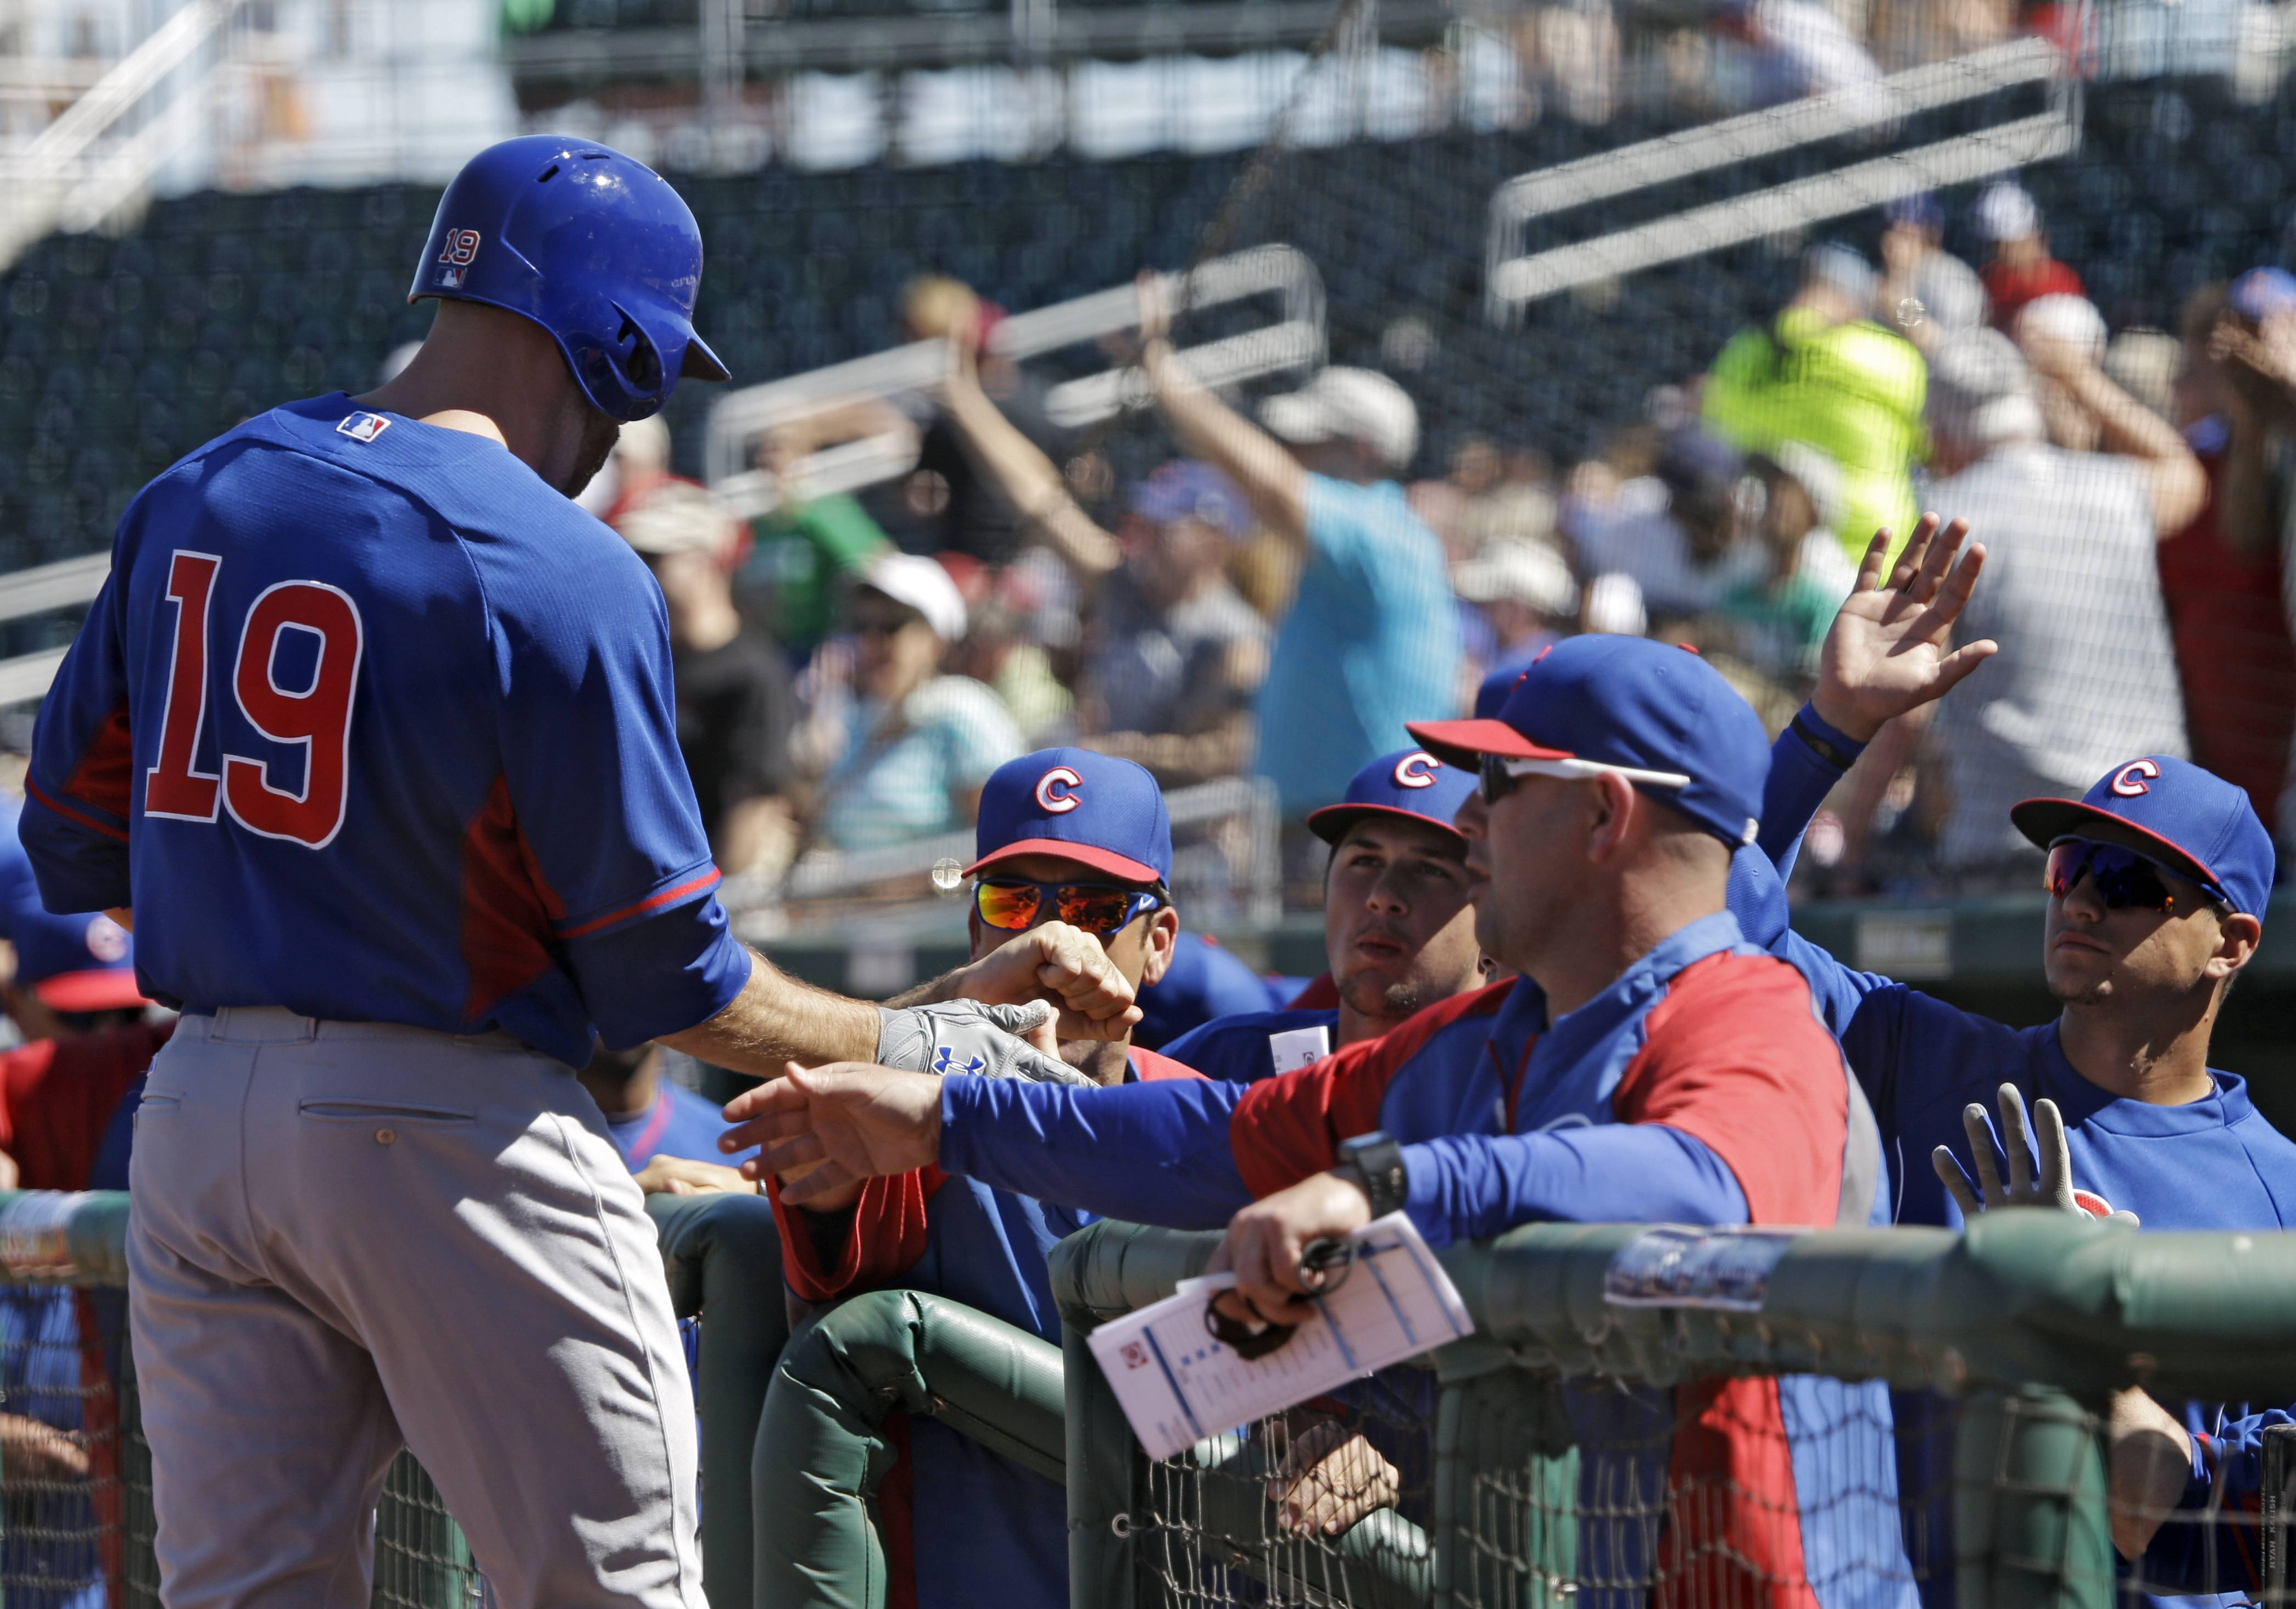 Chicago Cubs' Nate Schierholtz (19) is greeted at the dugout after his two-run home run against the Cincinnati Reds in a spring training exhibition baseball game Saturday, March 8, 2014, in Goodyear, Ariz.